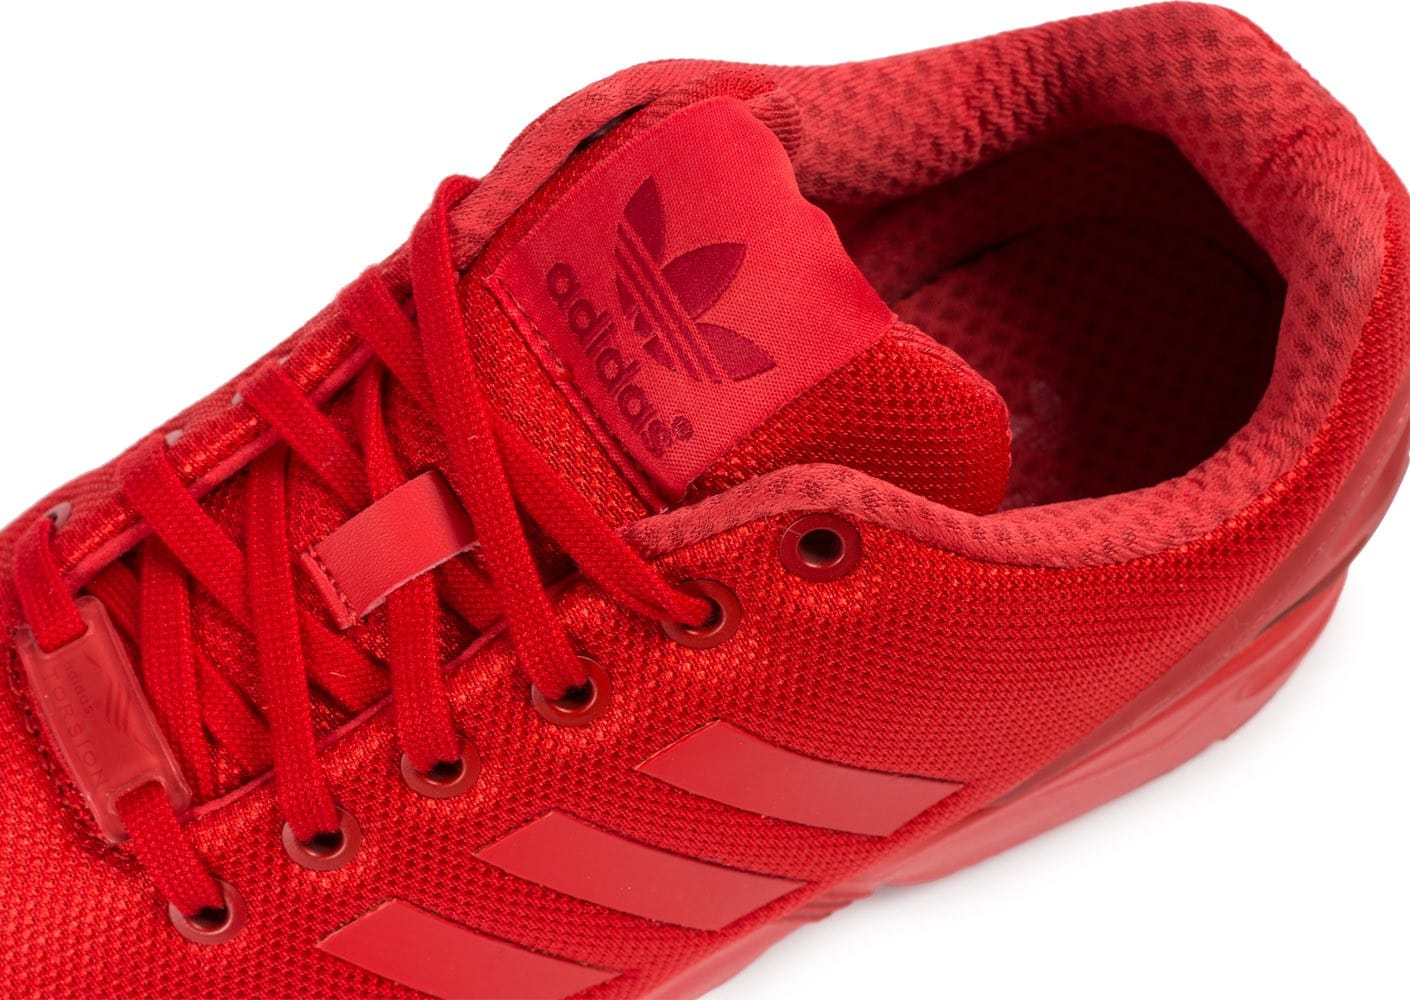 Homme Rouge Chaussures Chausport Baskets Flux Zx Adidas q1wCAA